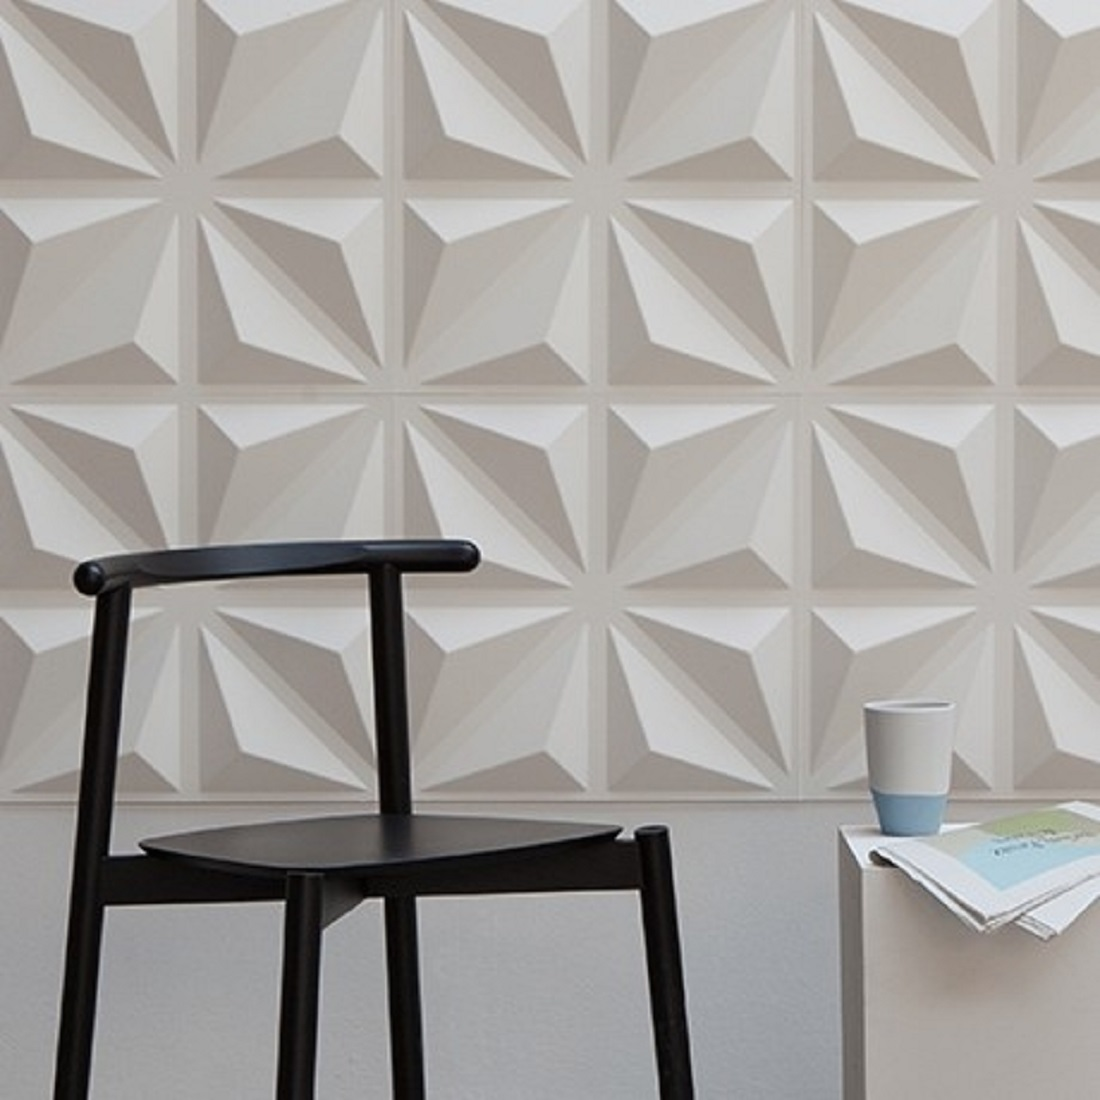 Top 10 wallpaper. Geometric patterns add depth and interest to even the smallest of spaces.